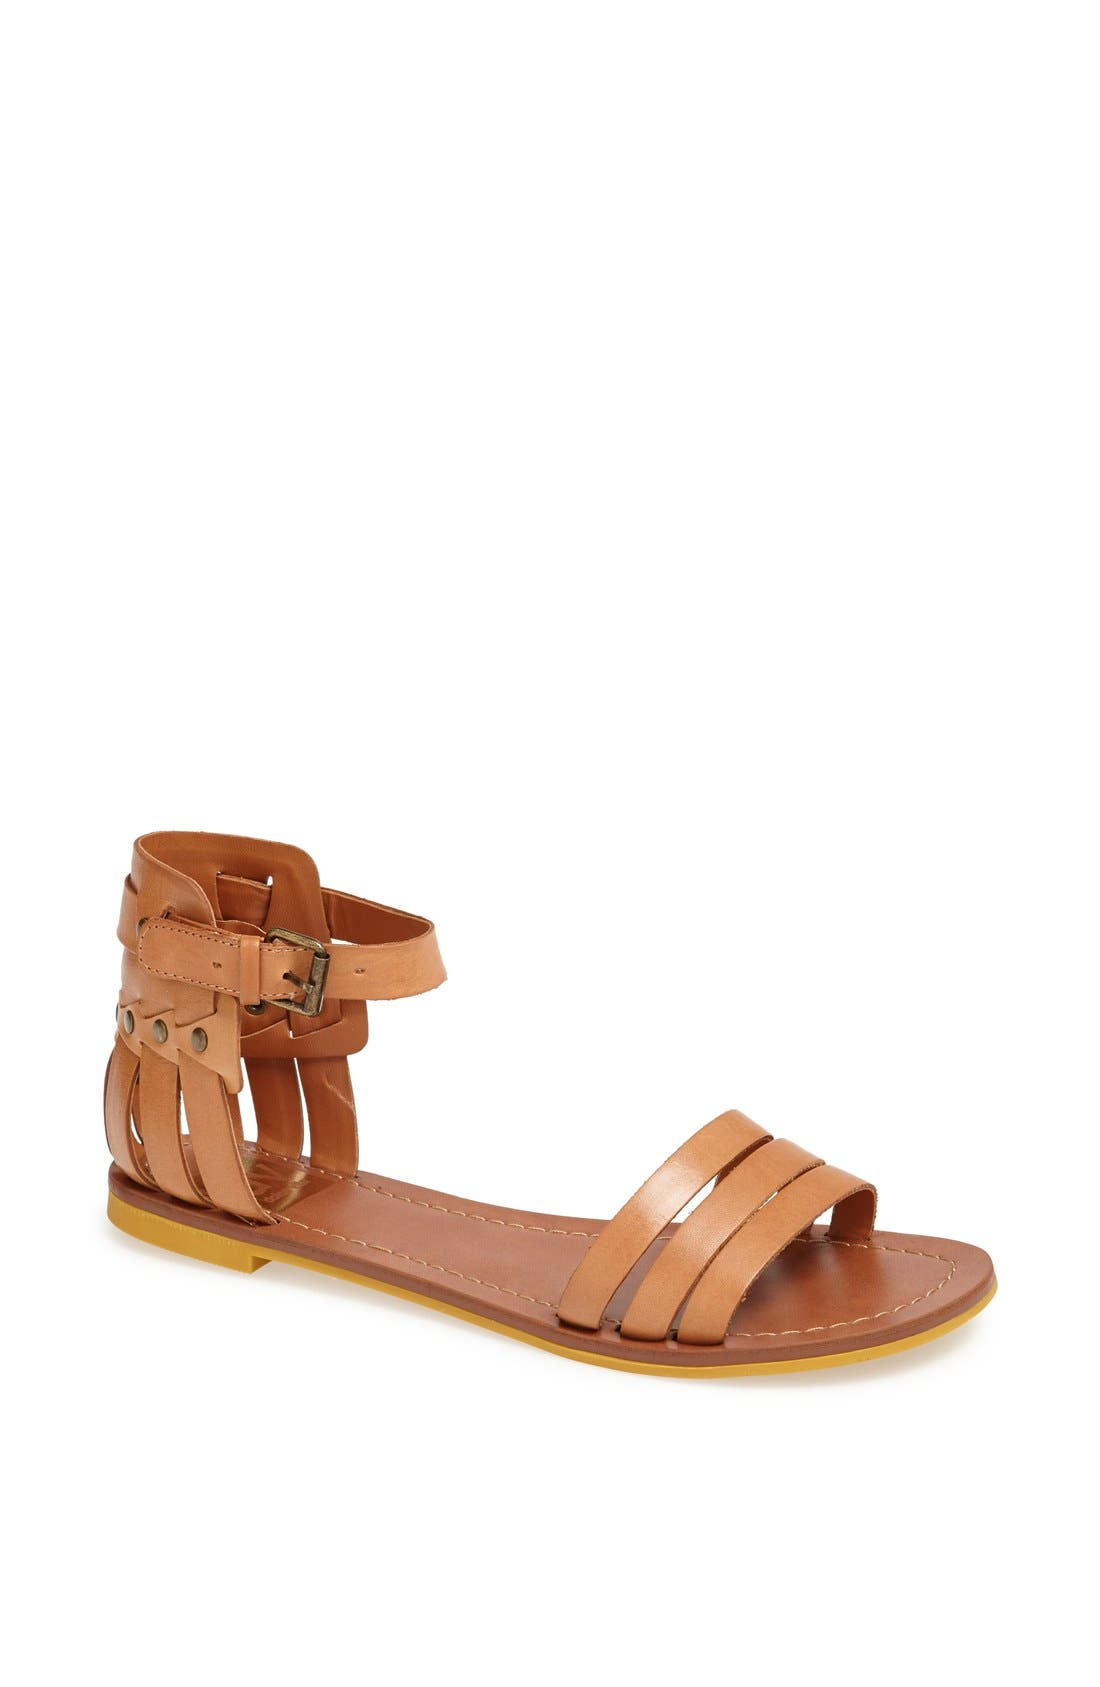 Alternate Image 1 Selected - DV by Dolce Vita 'Daffodil' Sandal